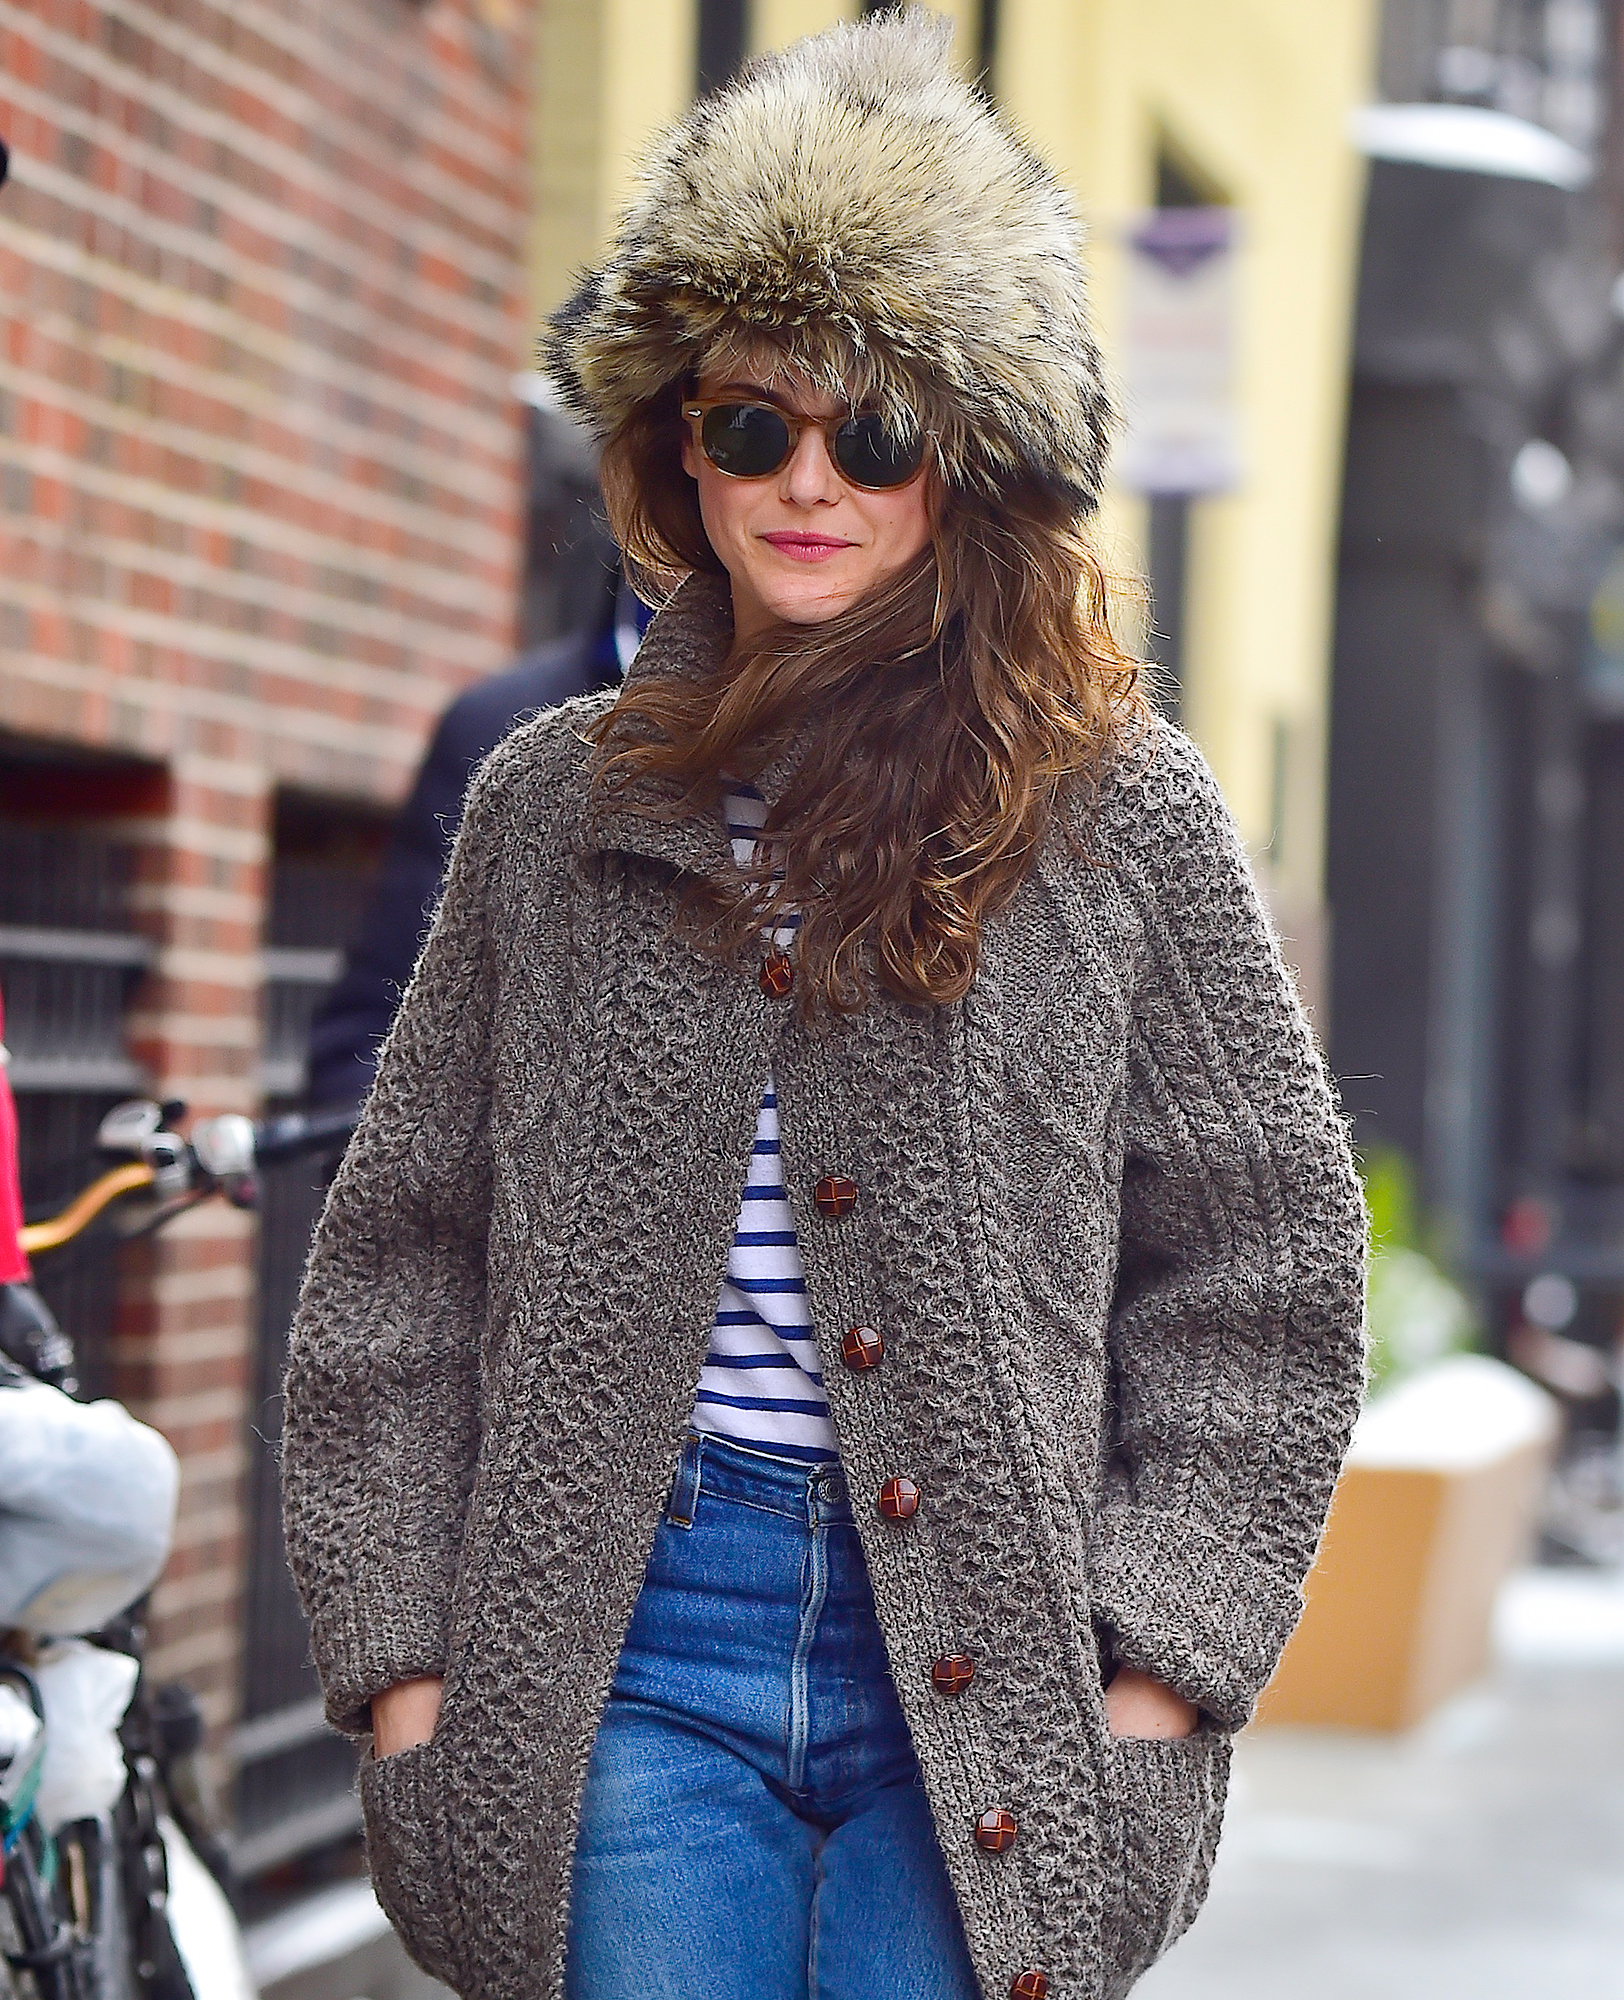 EXCLUSIVE: Keri Russell is Spotted Dressed for the Cold While Out Navigating the snow in Tribeca, New York CIty